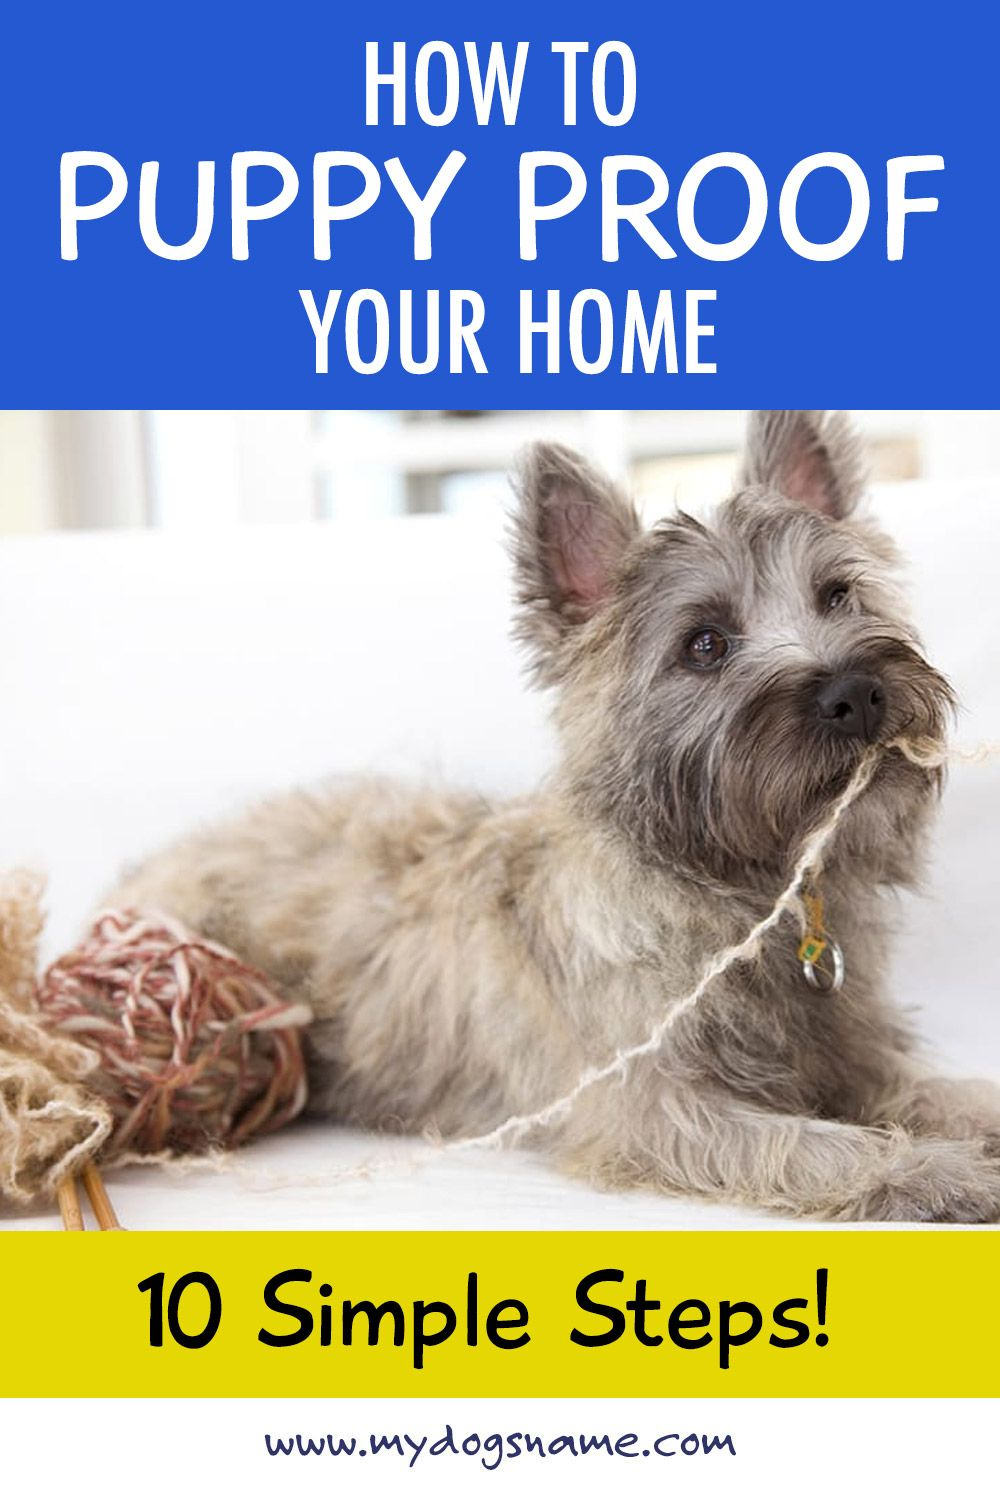 How To Puppy Proof Your Home References